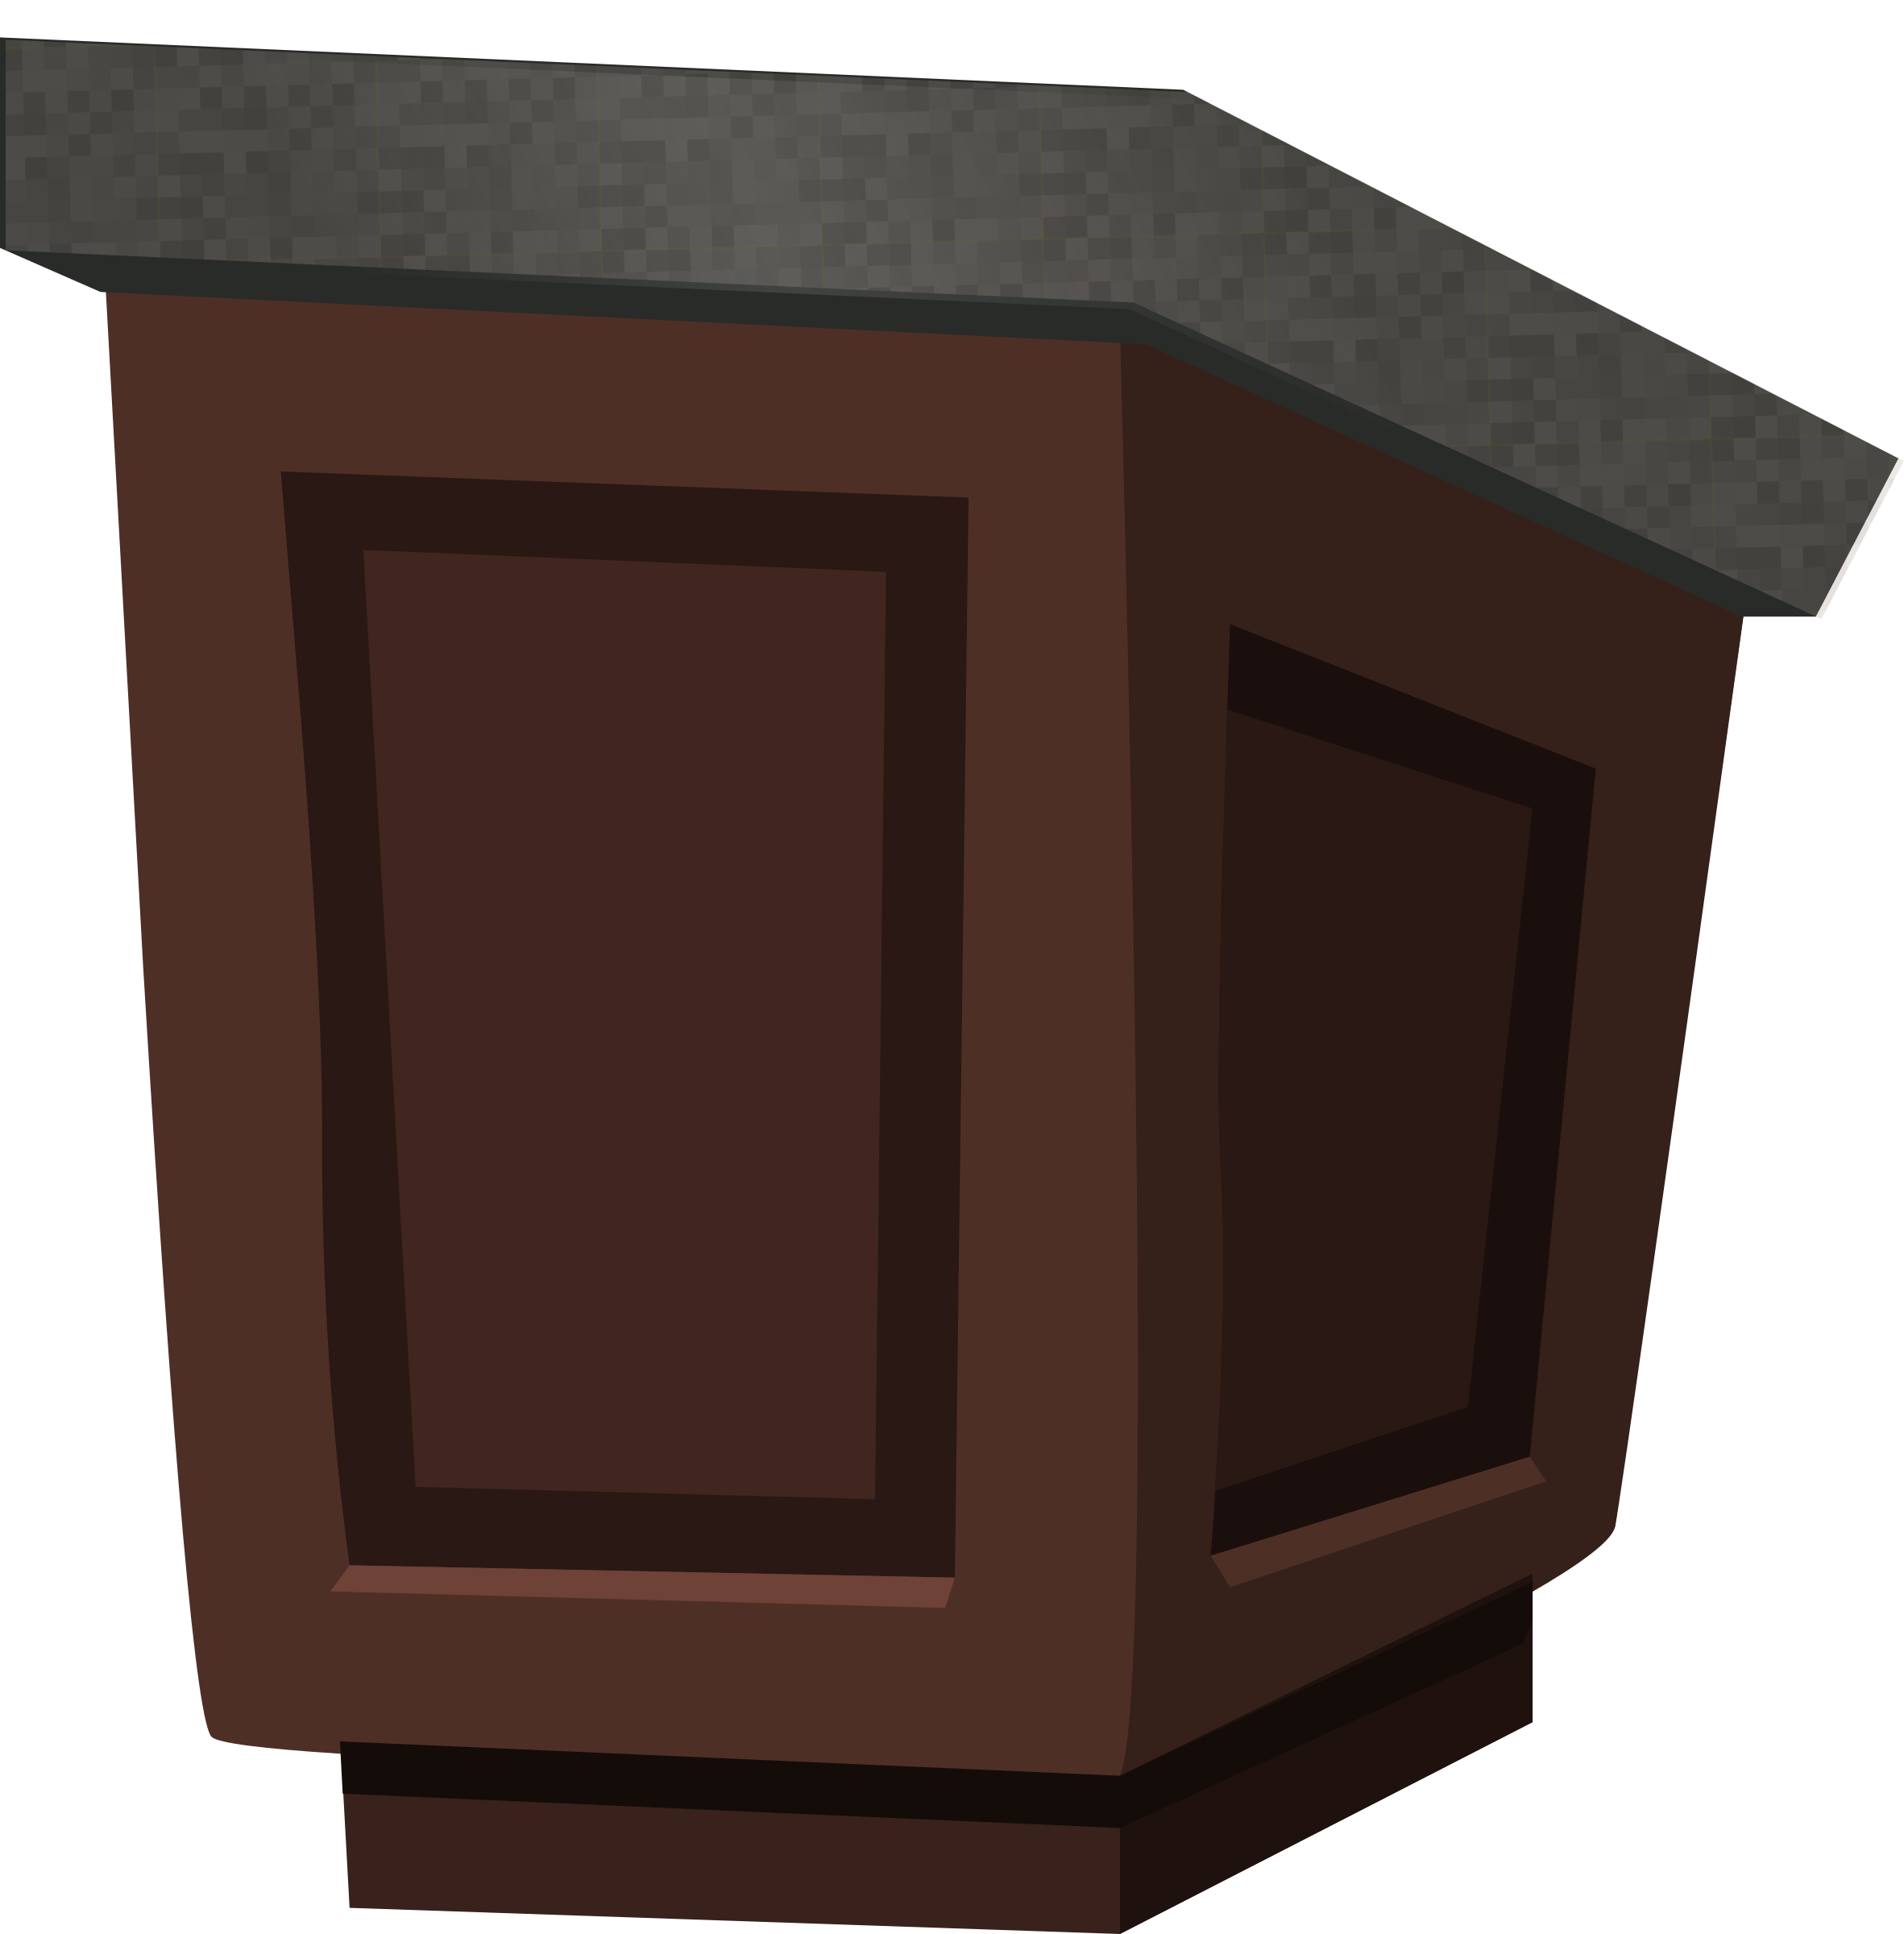 Podium - wood with granite top - from Glitch by anarres